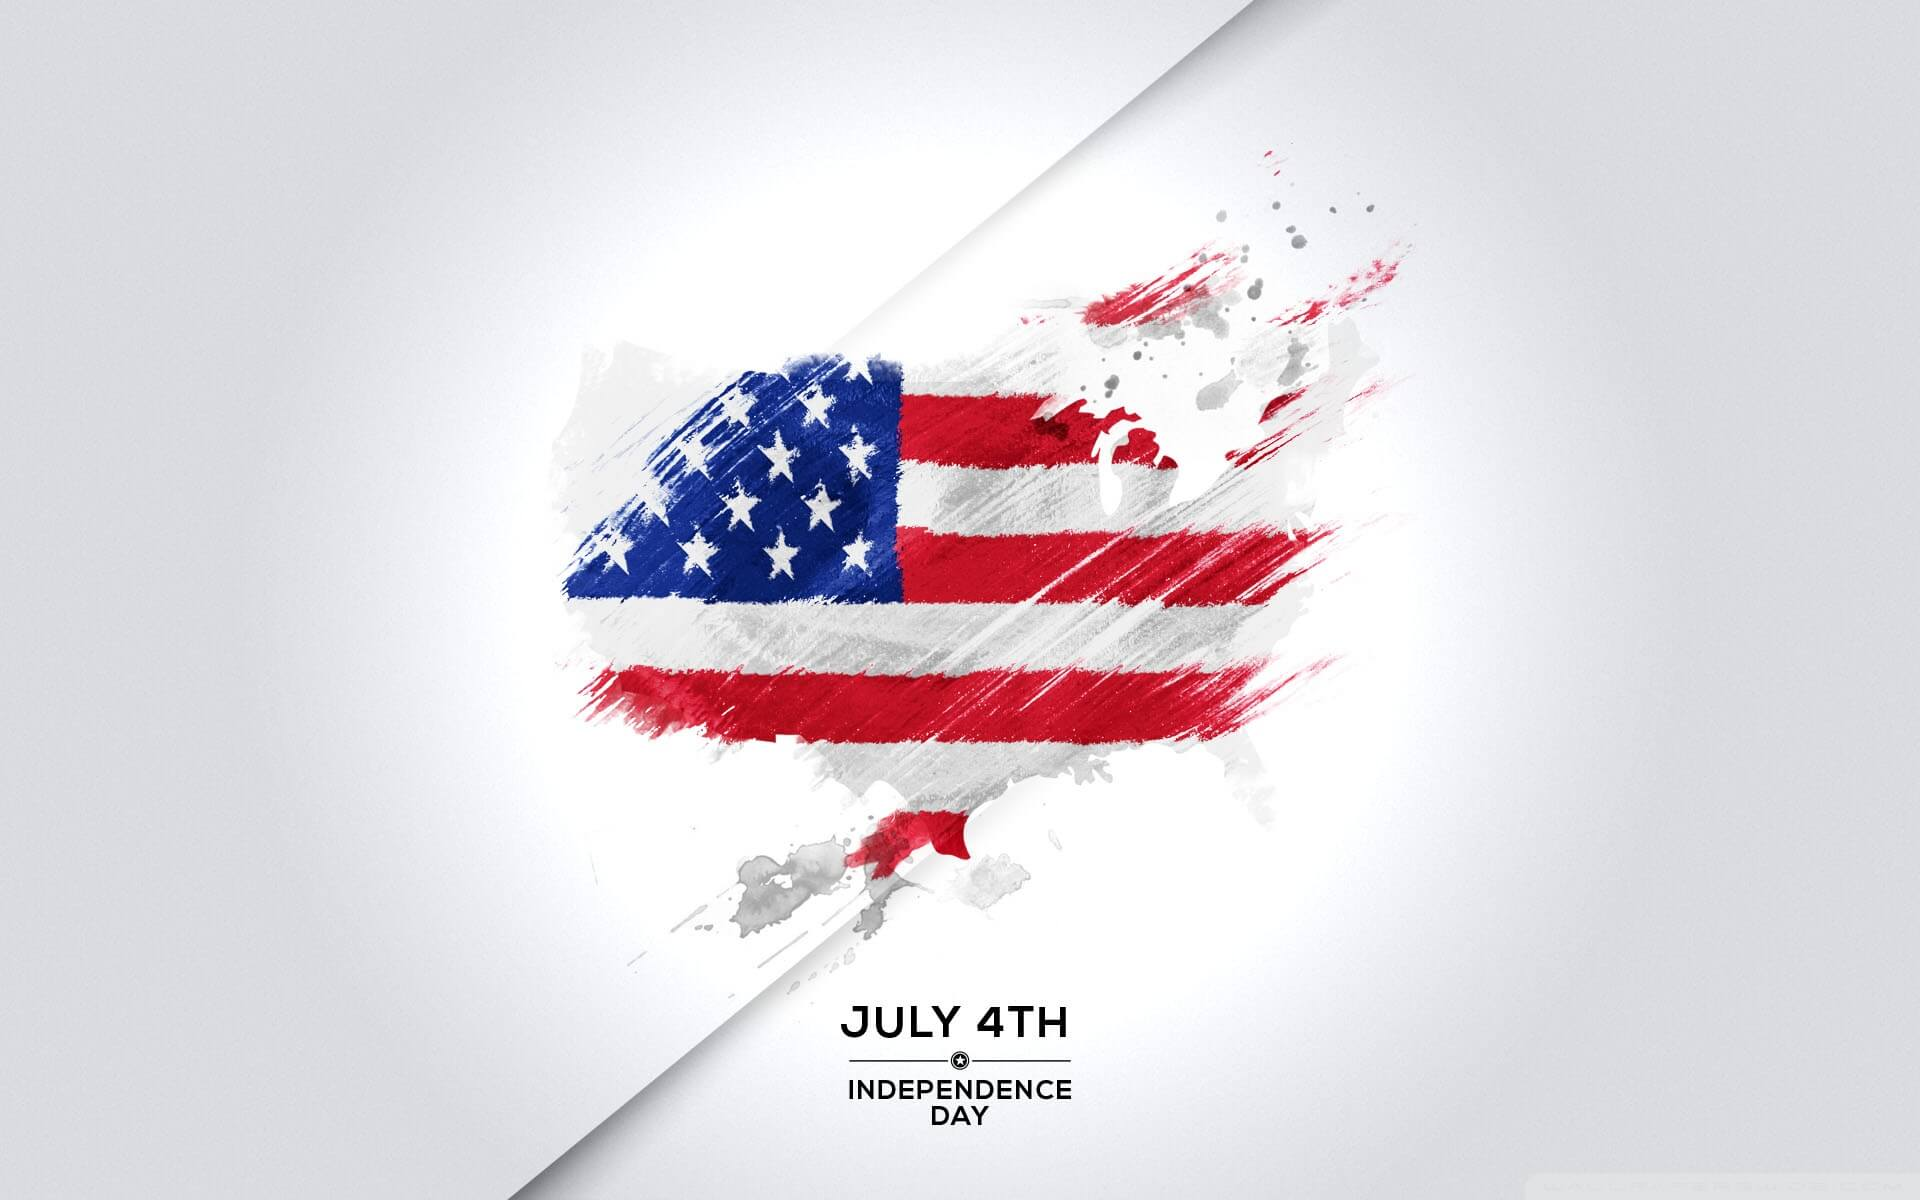 us independence day 4th july image